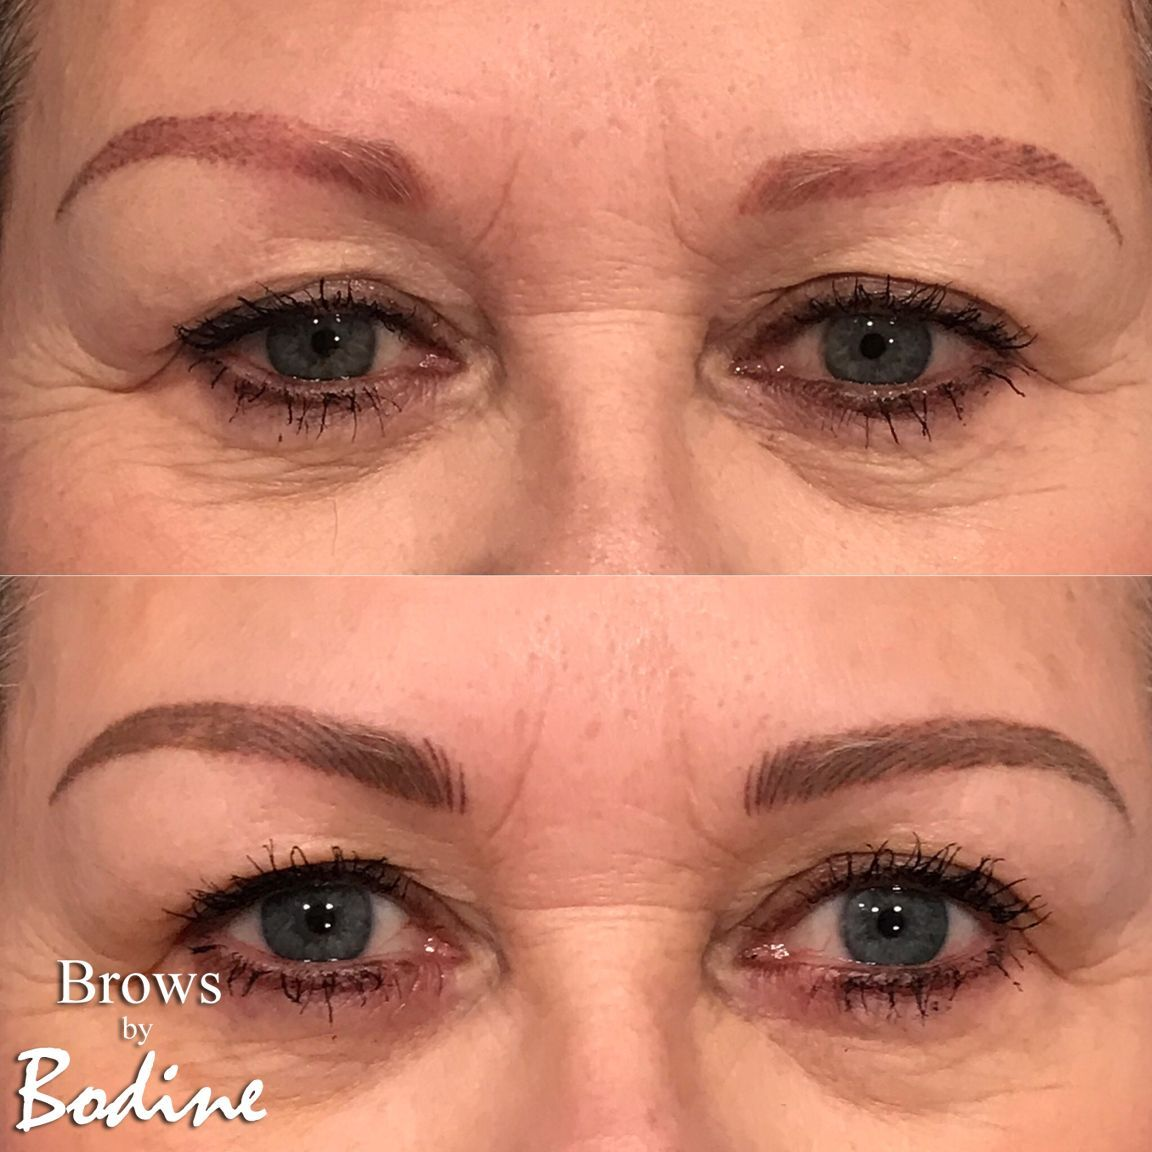 Using Microblading and color correction to cover a tattoo